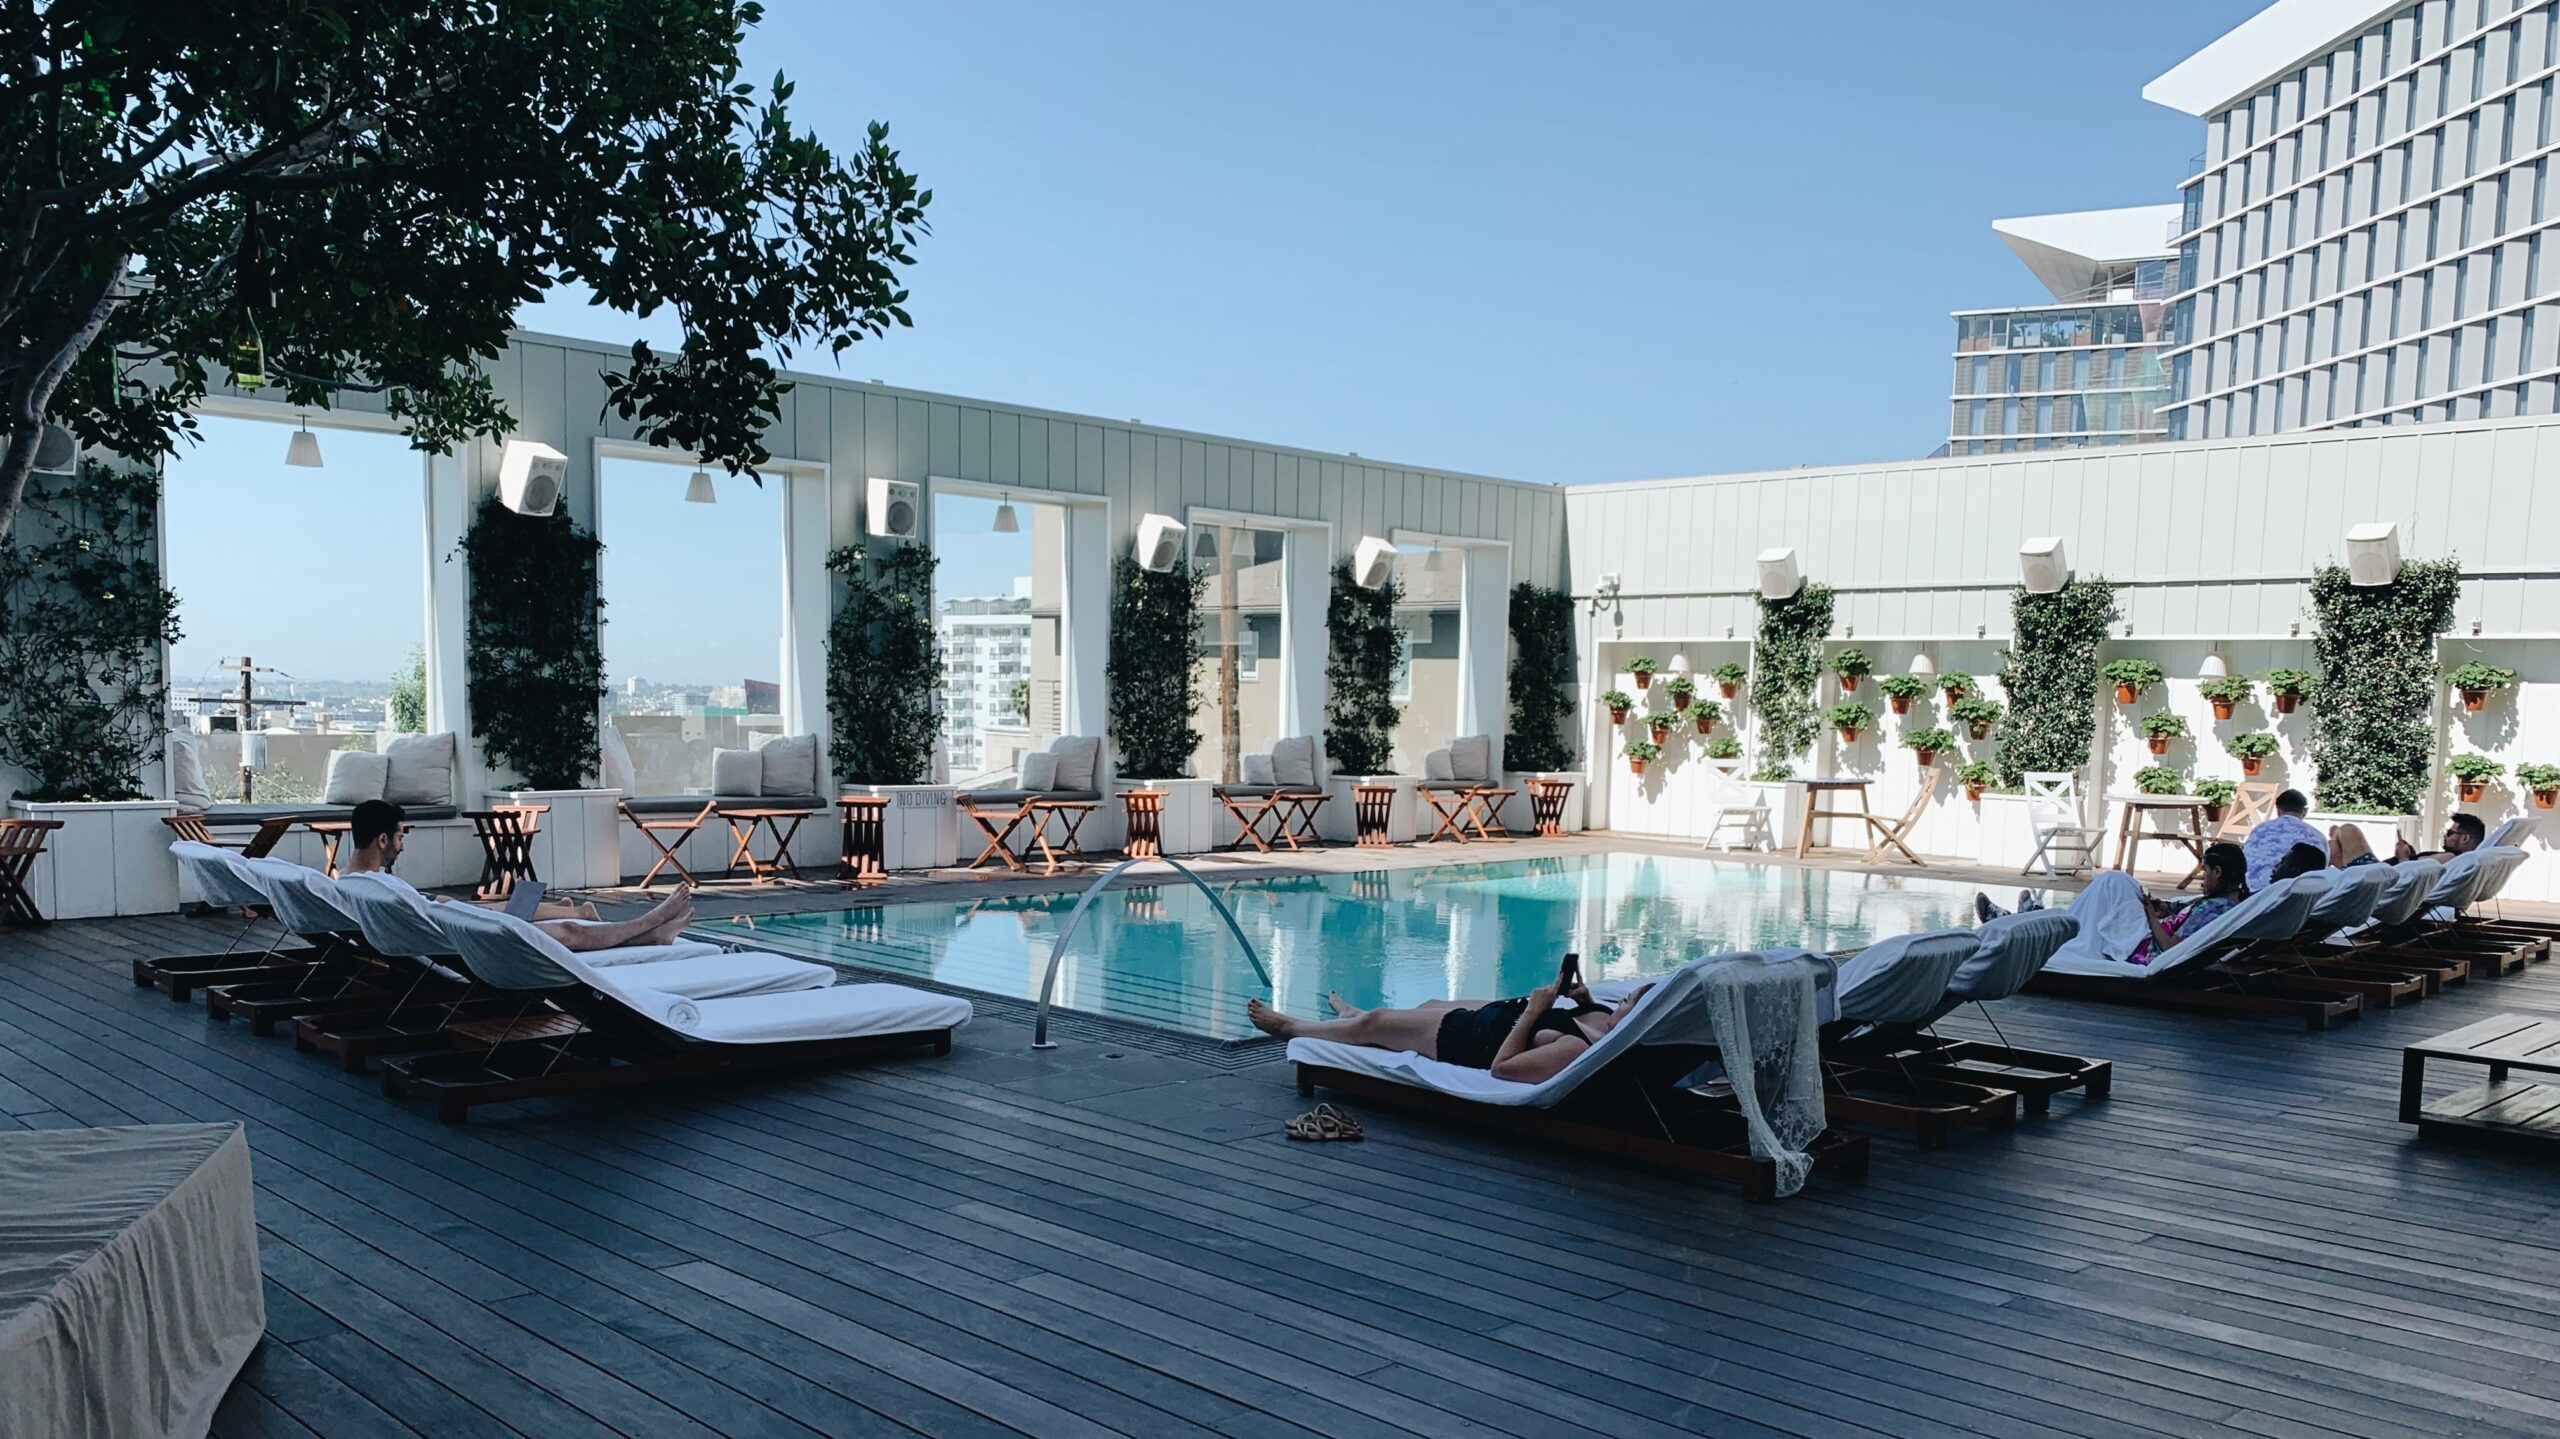 15 coolest hotels you'll find in Los Angeles